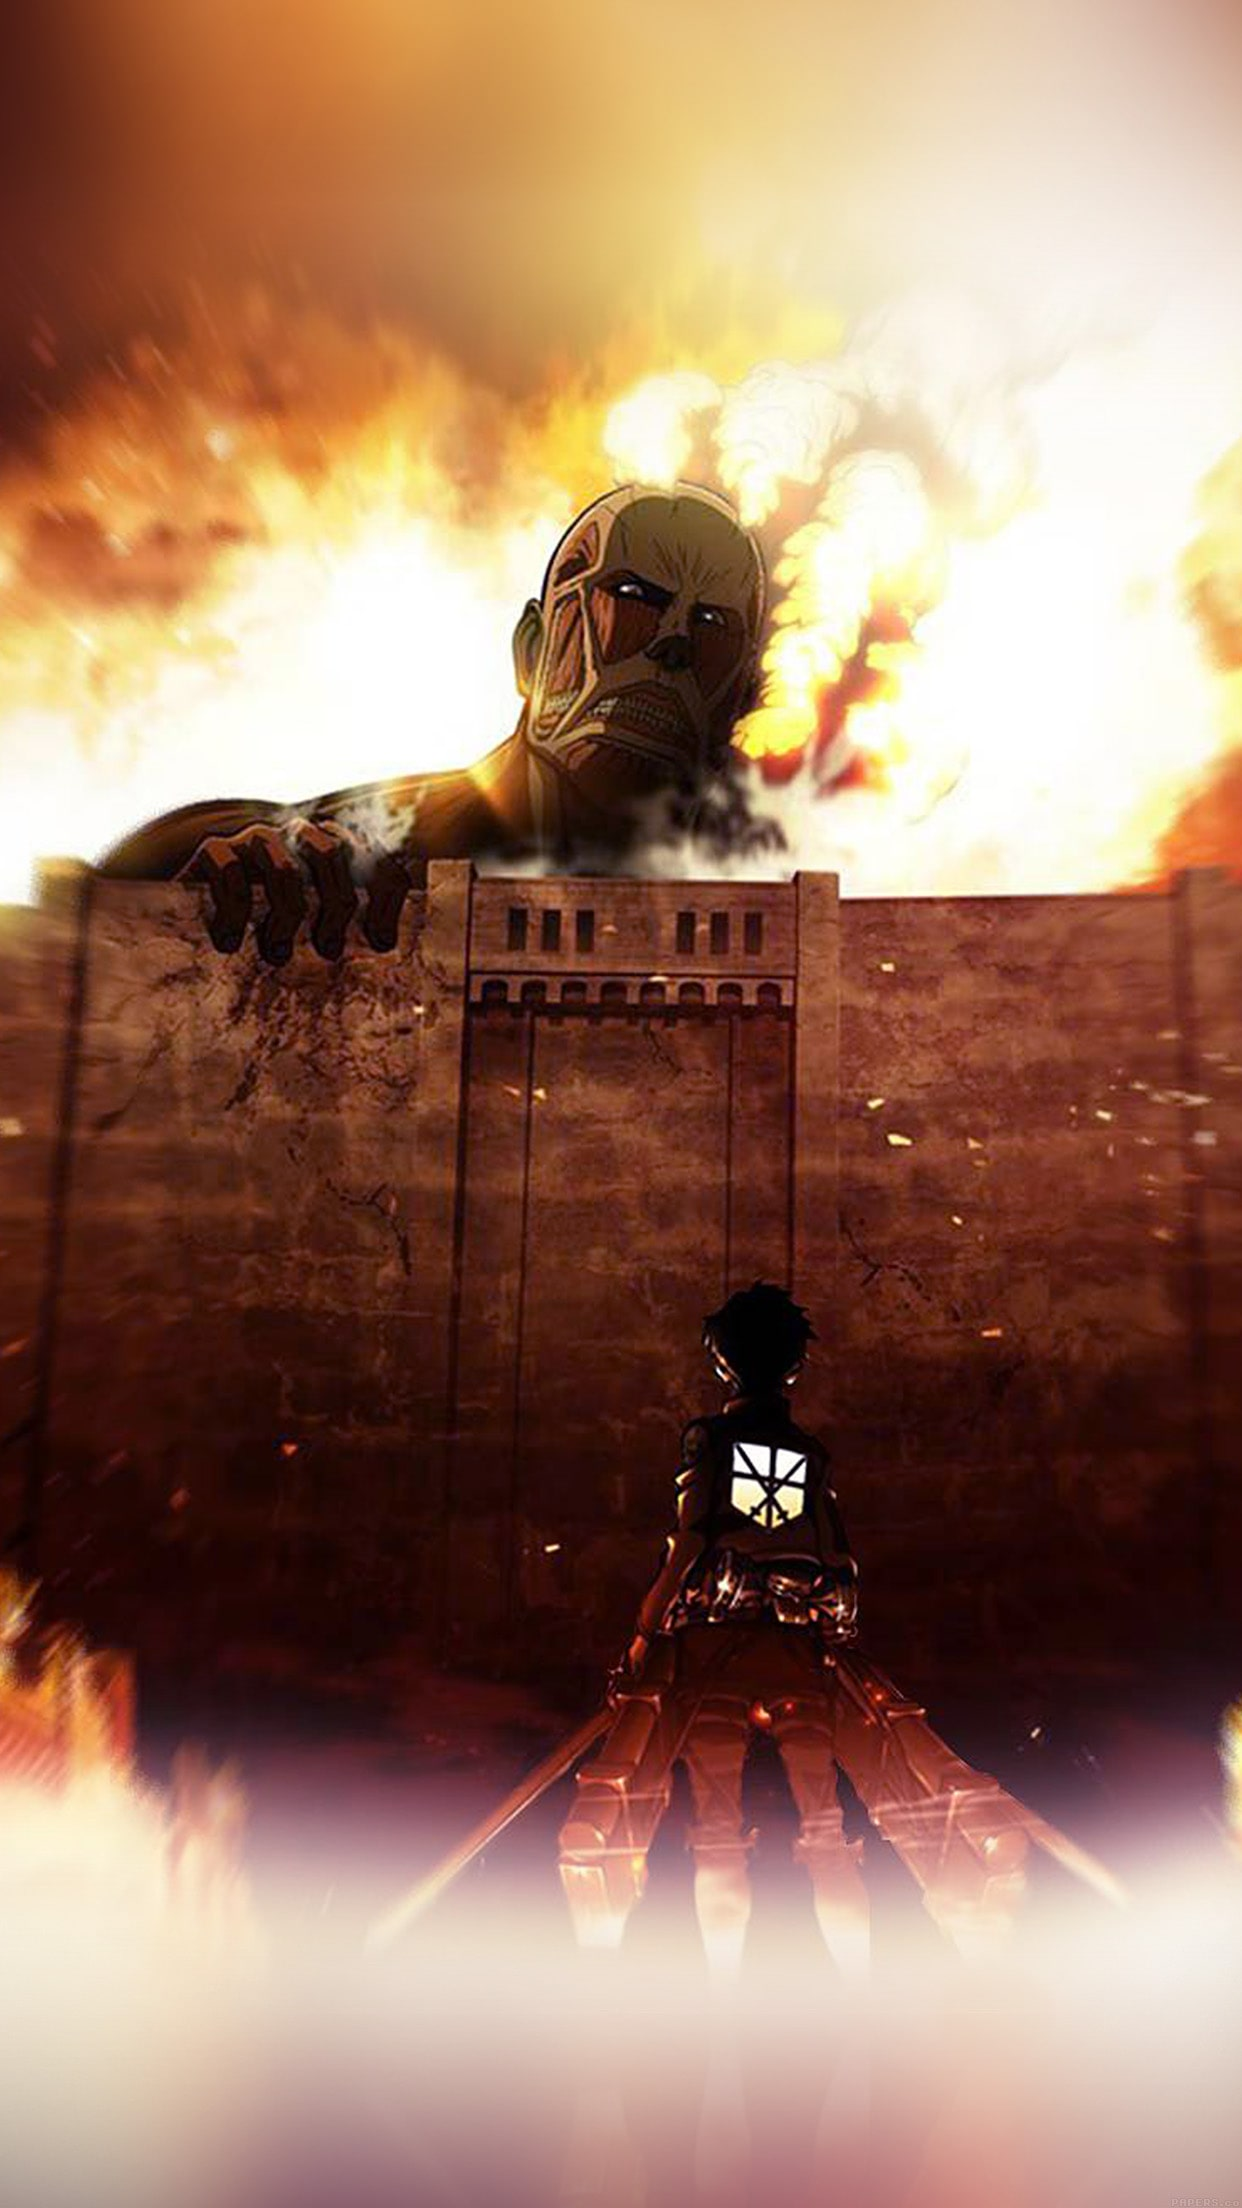 Here's how to change the wallpaper on your iphone or ipad and make it feel like a new device again. Attack On Titan Backgrounds - KoLPaPer - Awesome Free HD ...